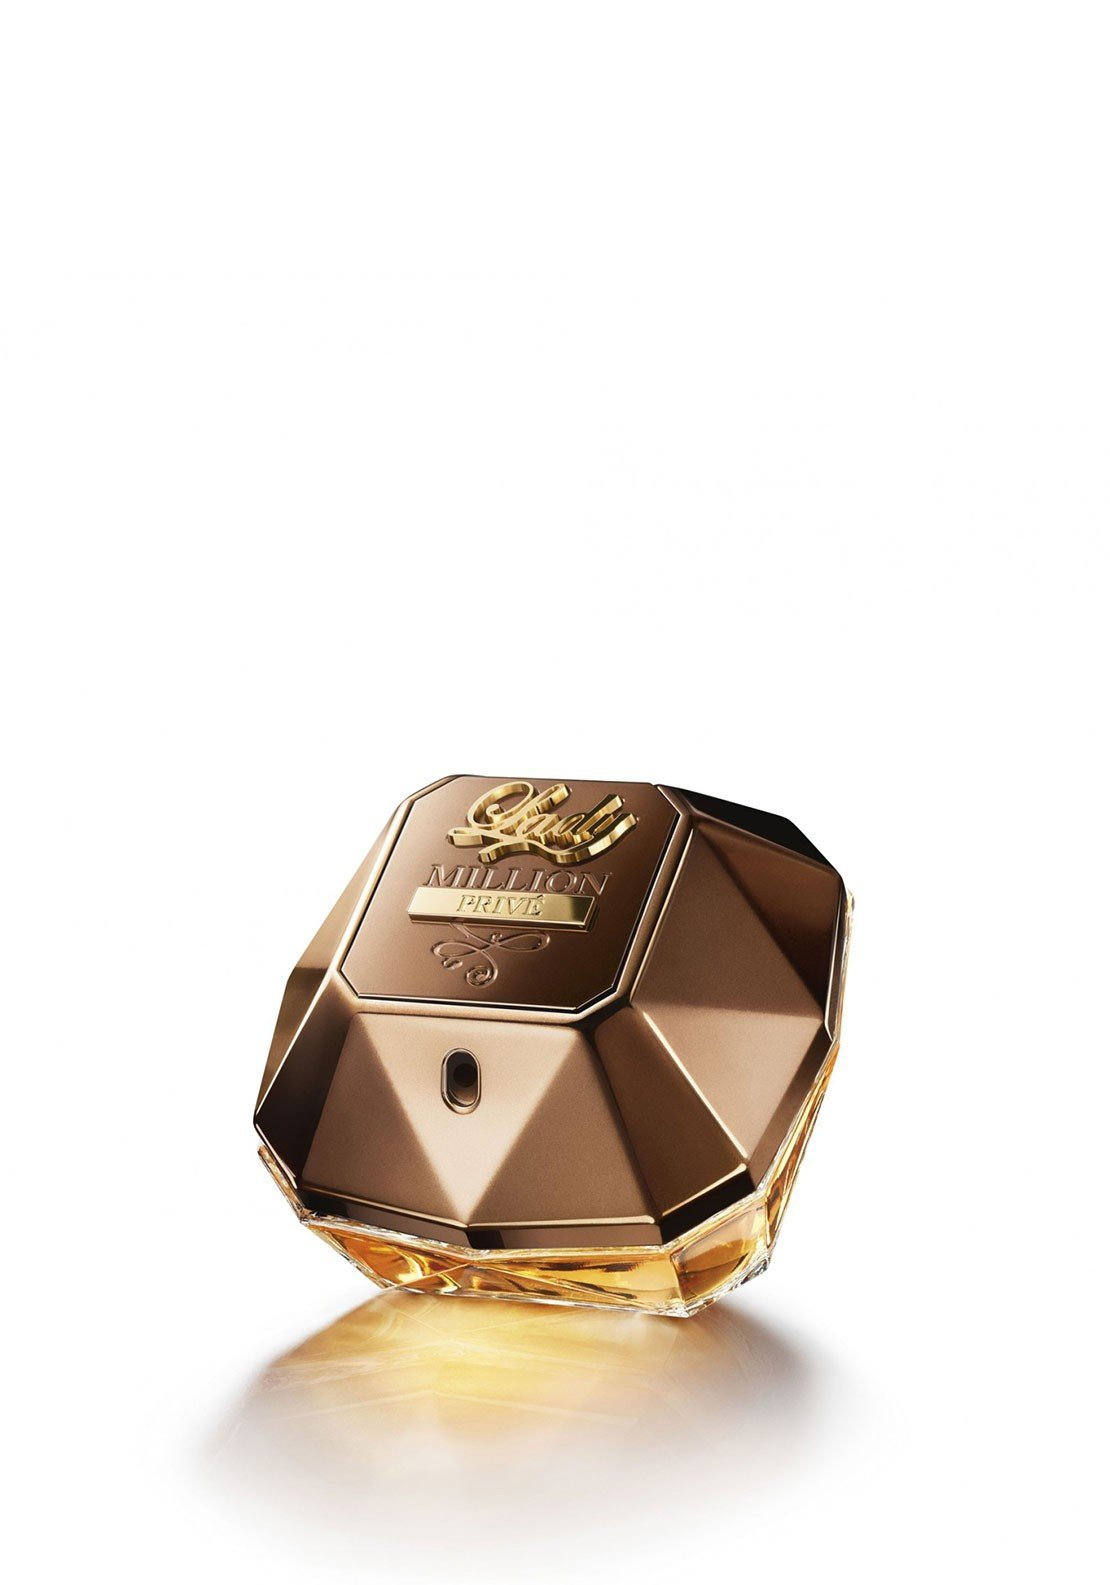 paco rabanne lady million prive sku pul6510650 01 2 perfume